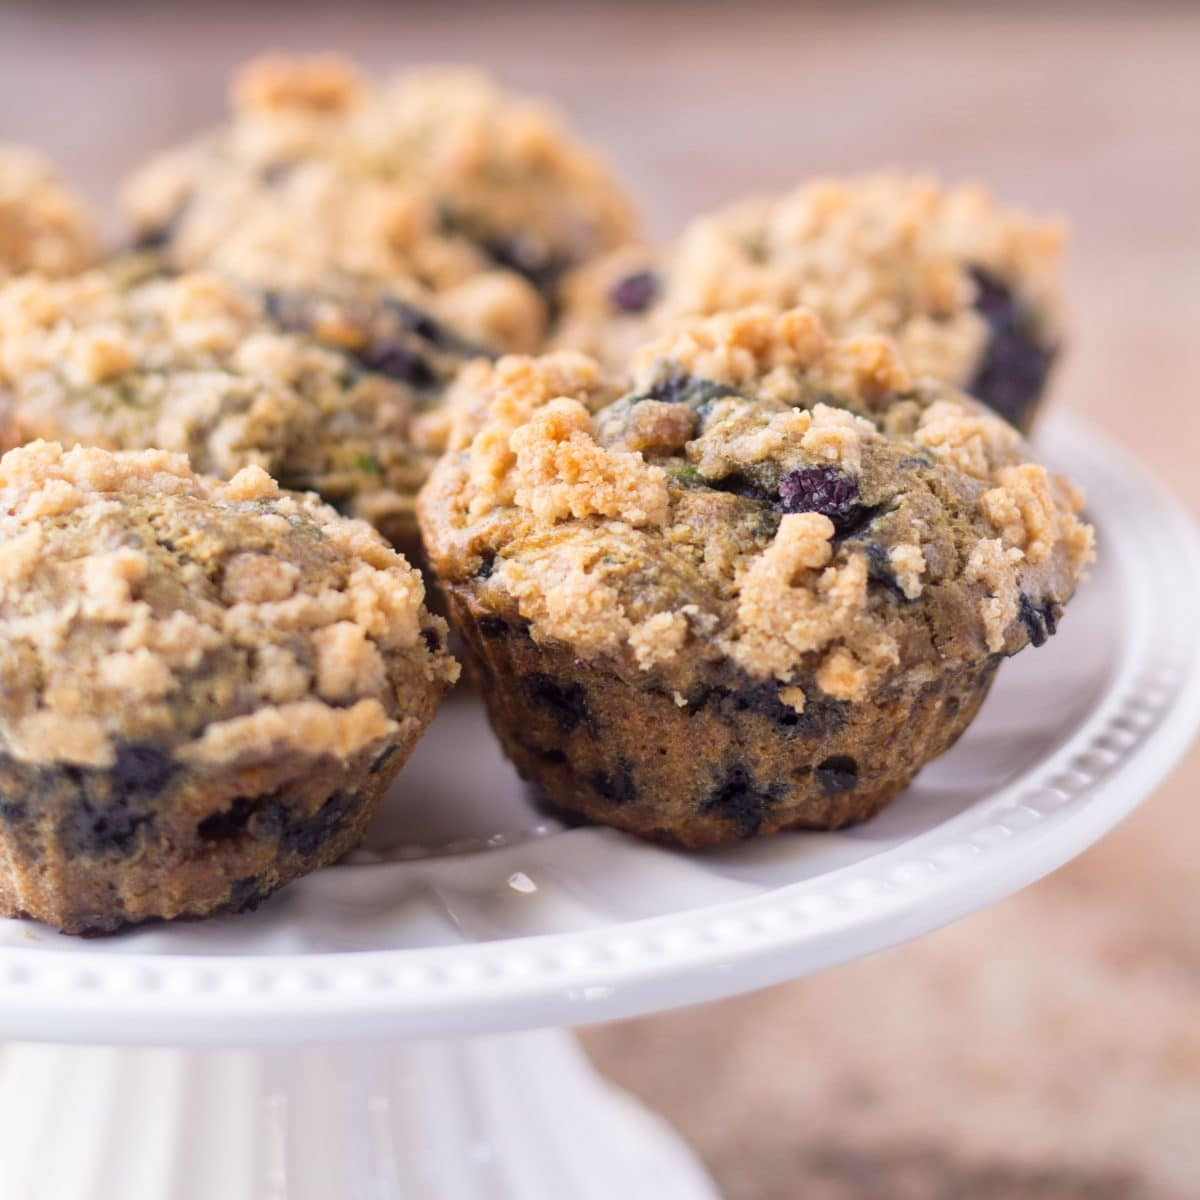 Healthy Blueberry Zucchini Muffins with Crumb Topping